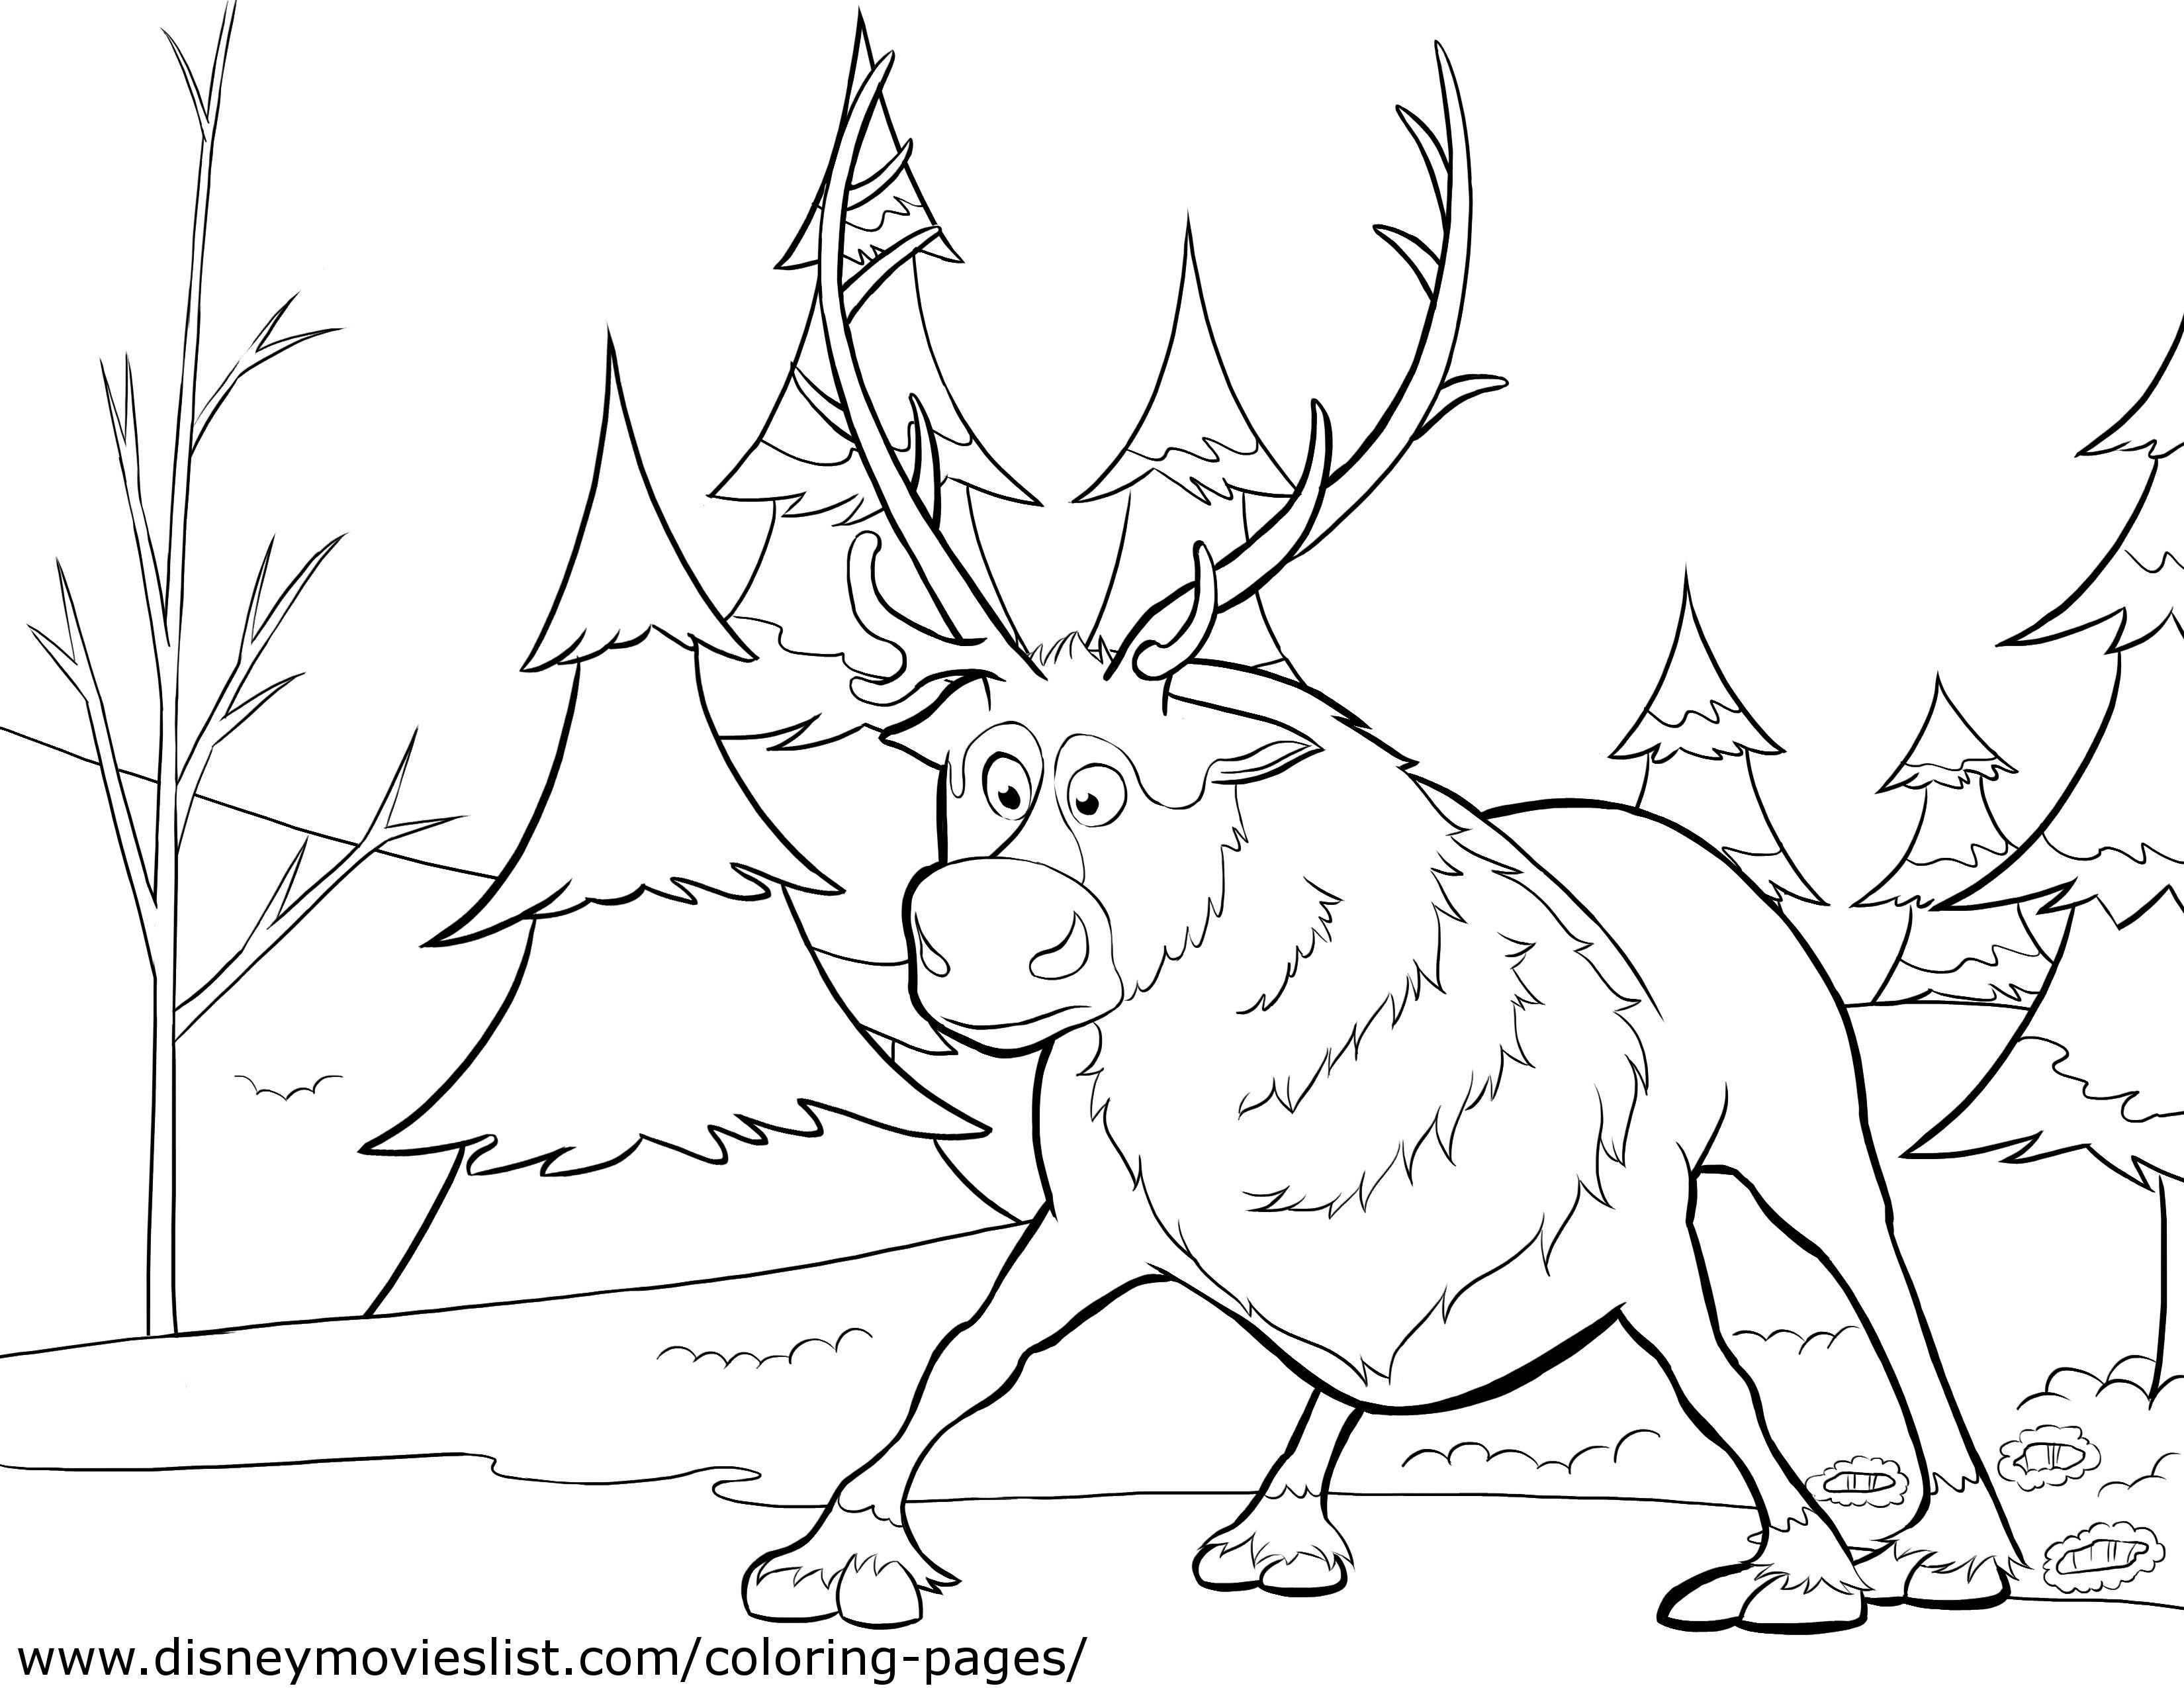 Frozen Coloring Pages A4 Printable Coloring Pages Pinterest Malen